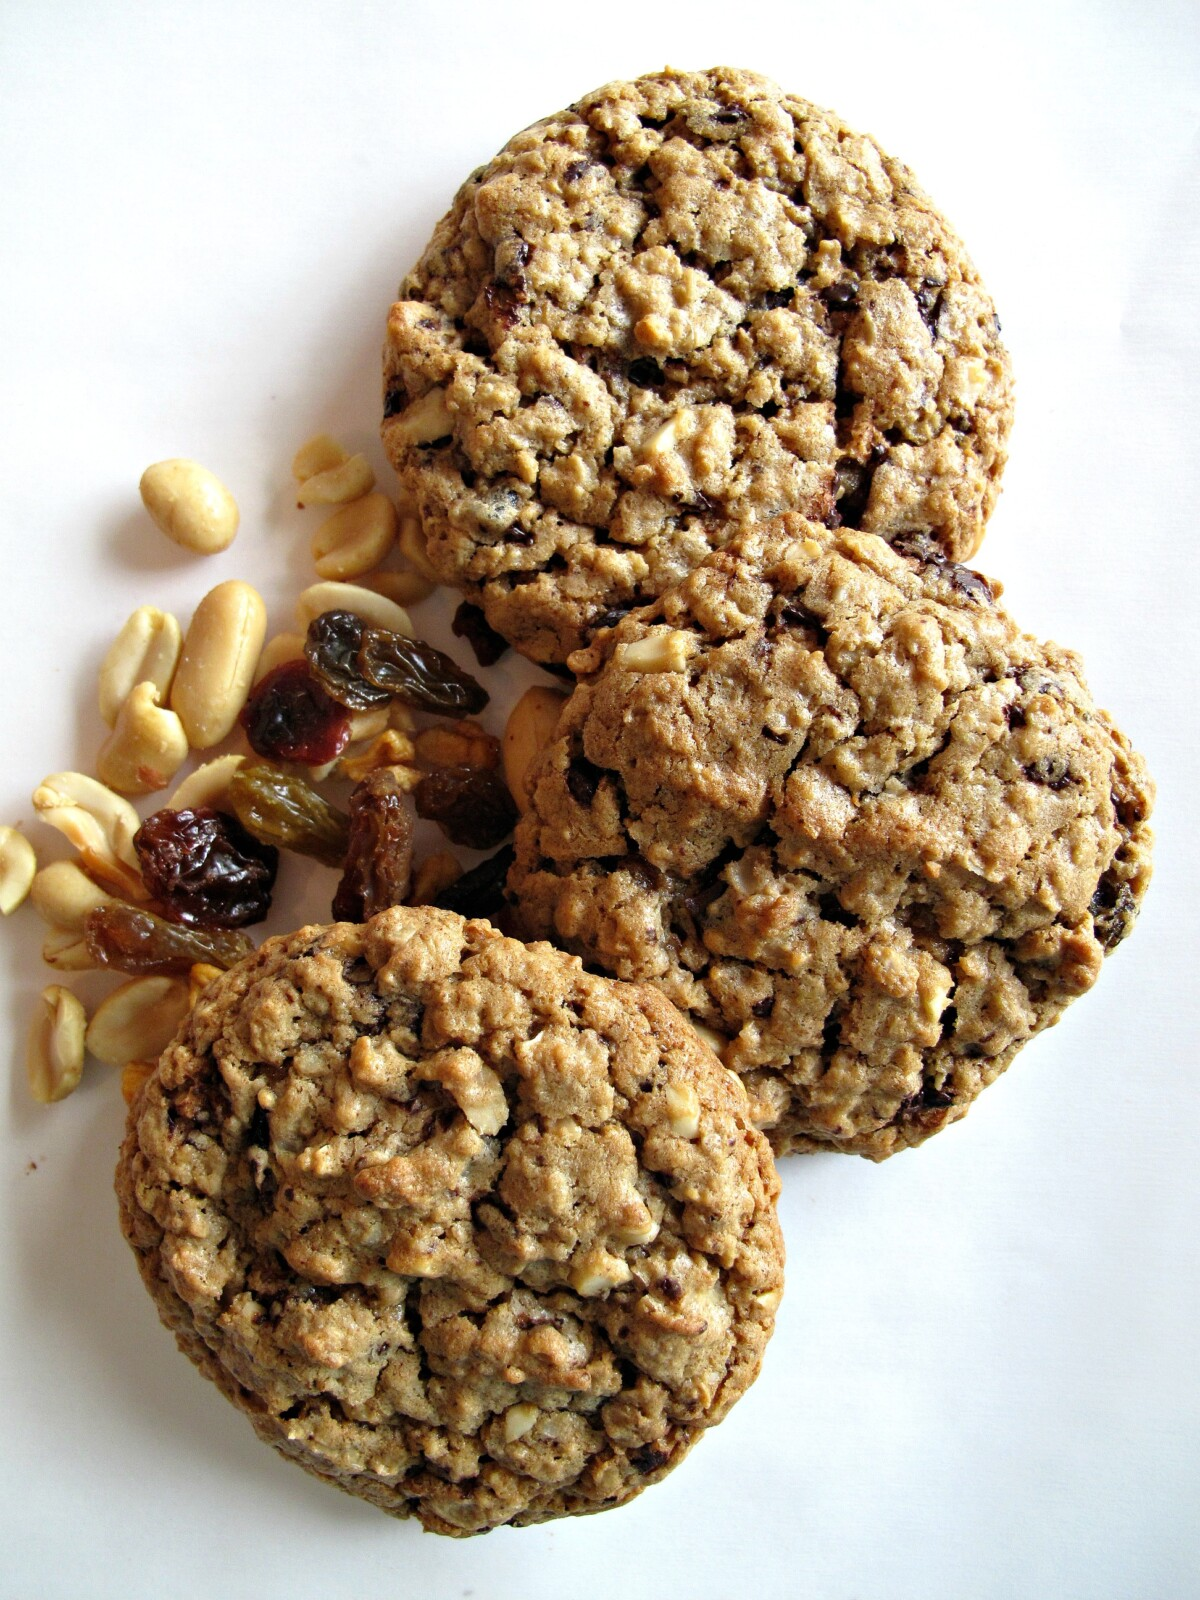 Three thick, crackled Marathon Cookies next to some peanuts and dried fruit.